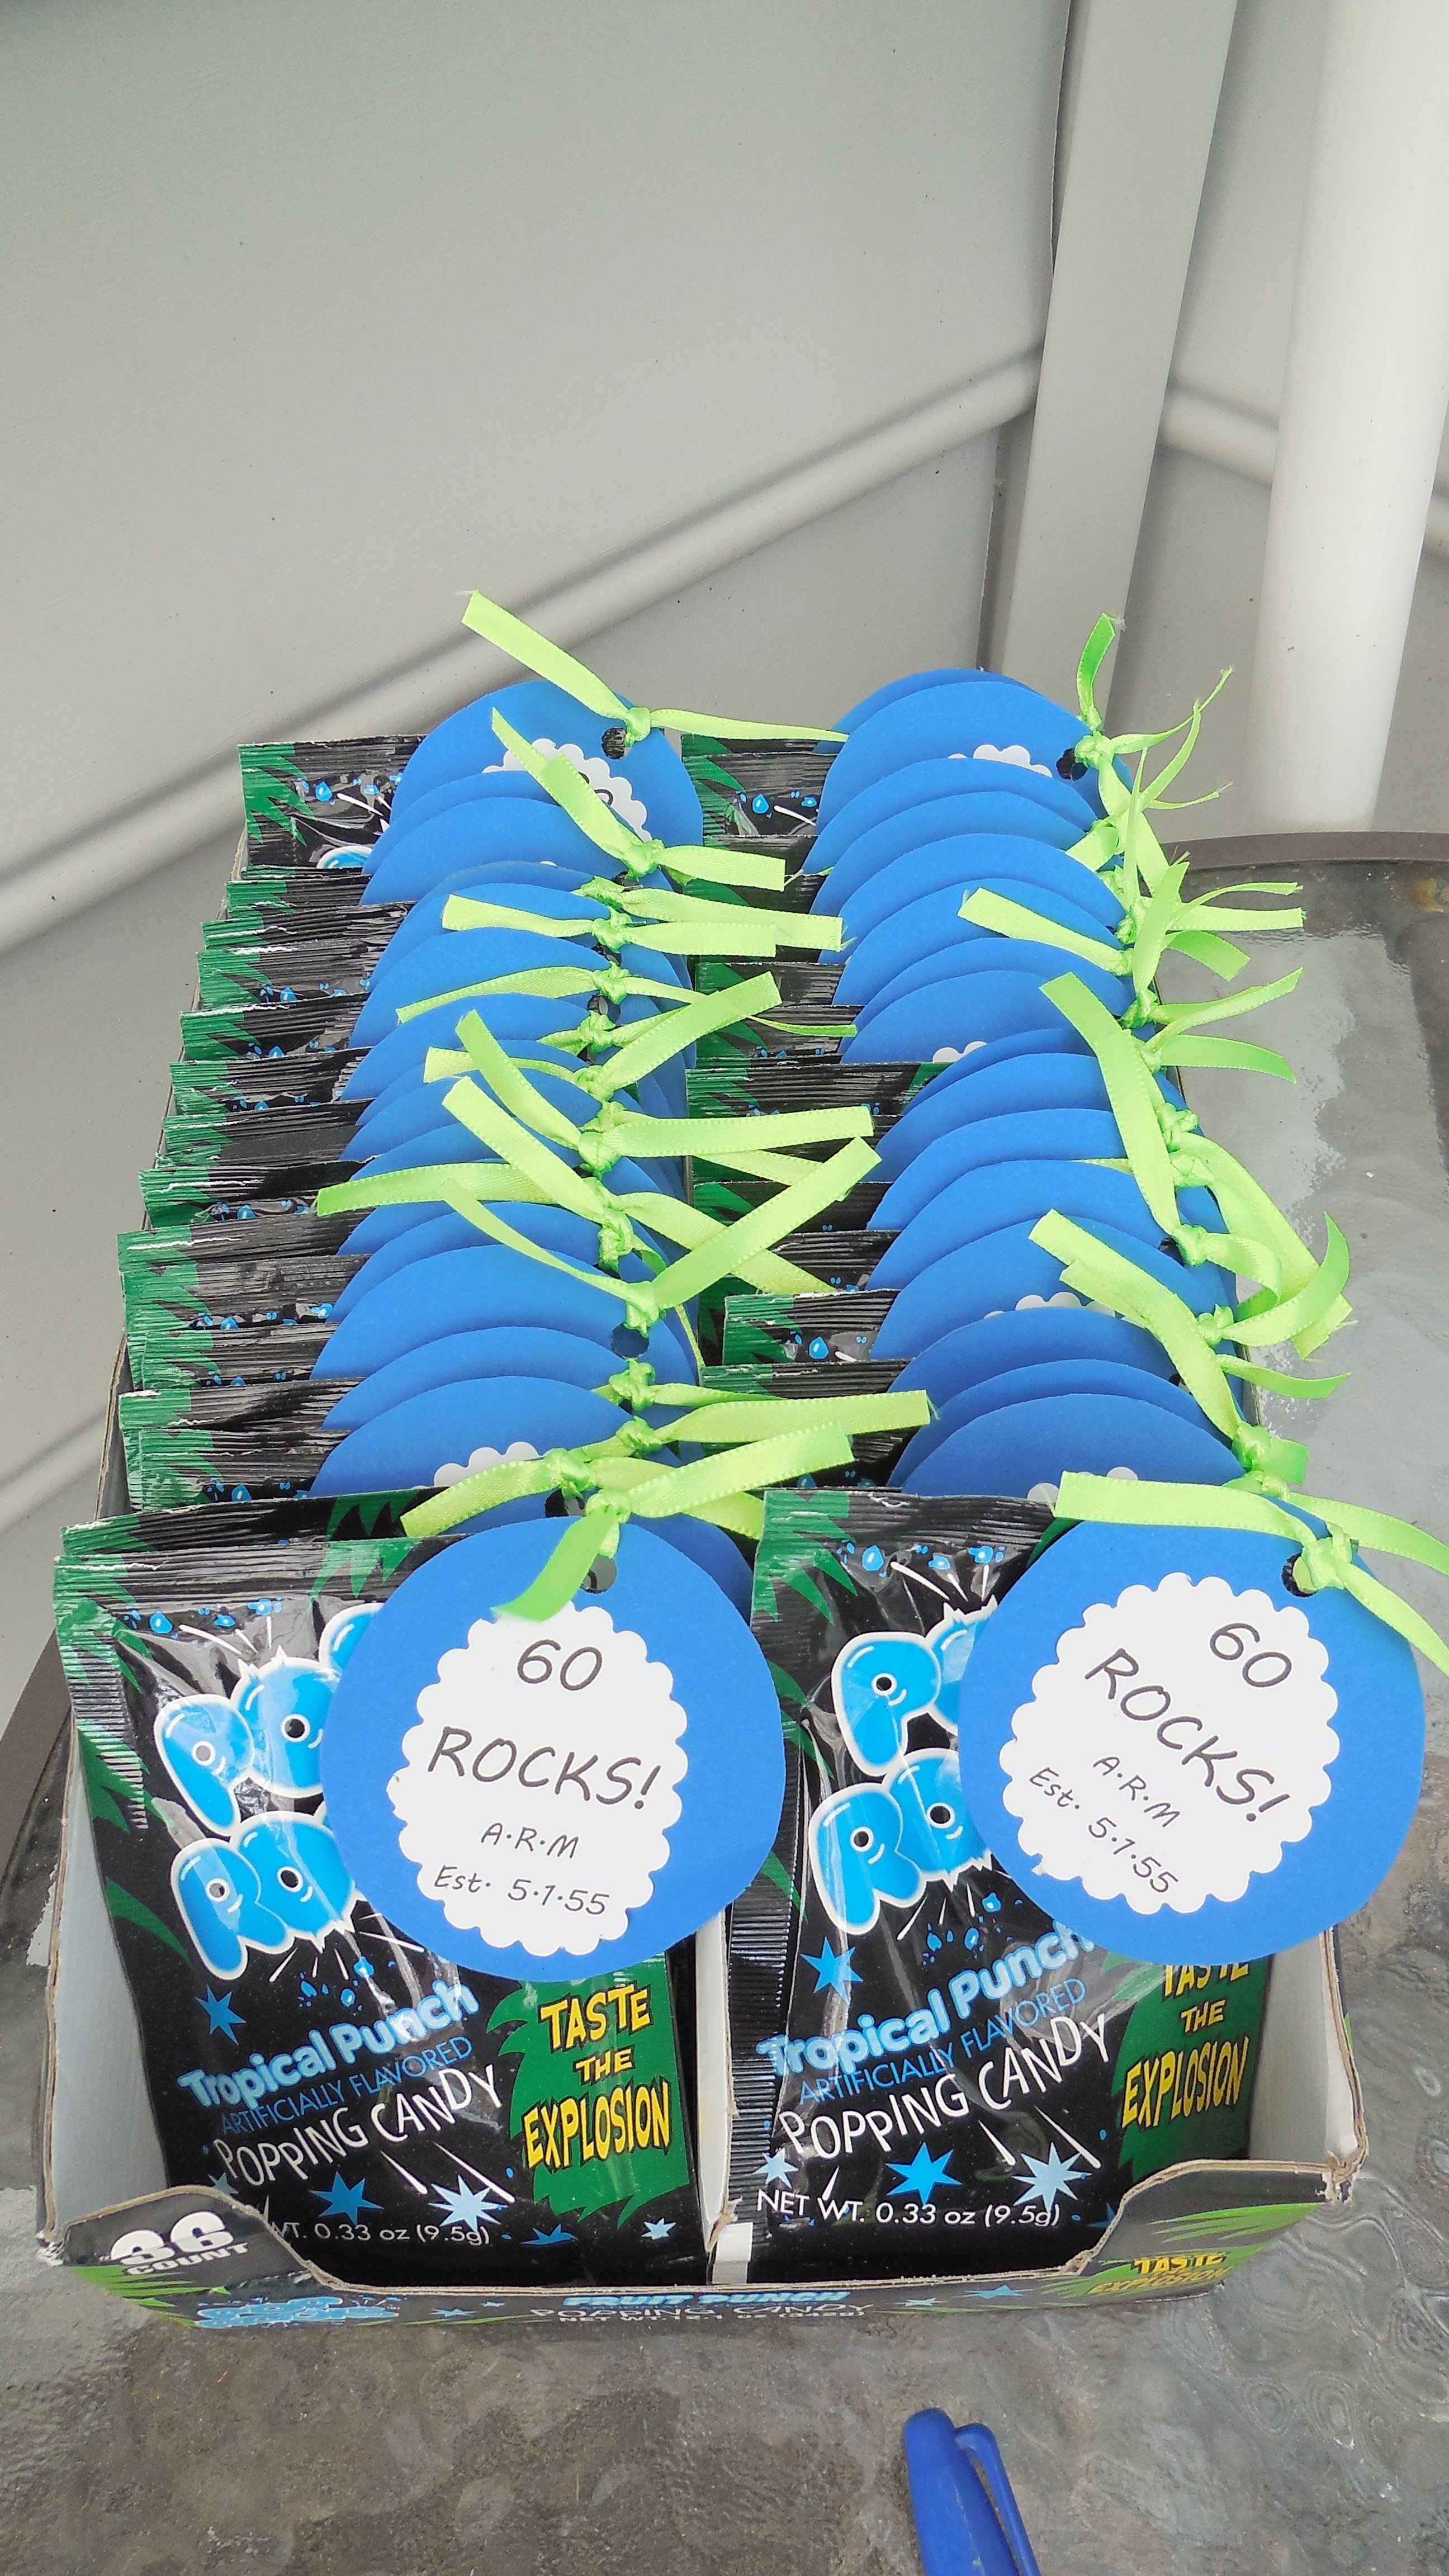 60th birthday party favors. | bean & buddy invites party decoration